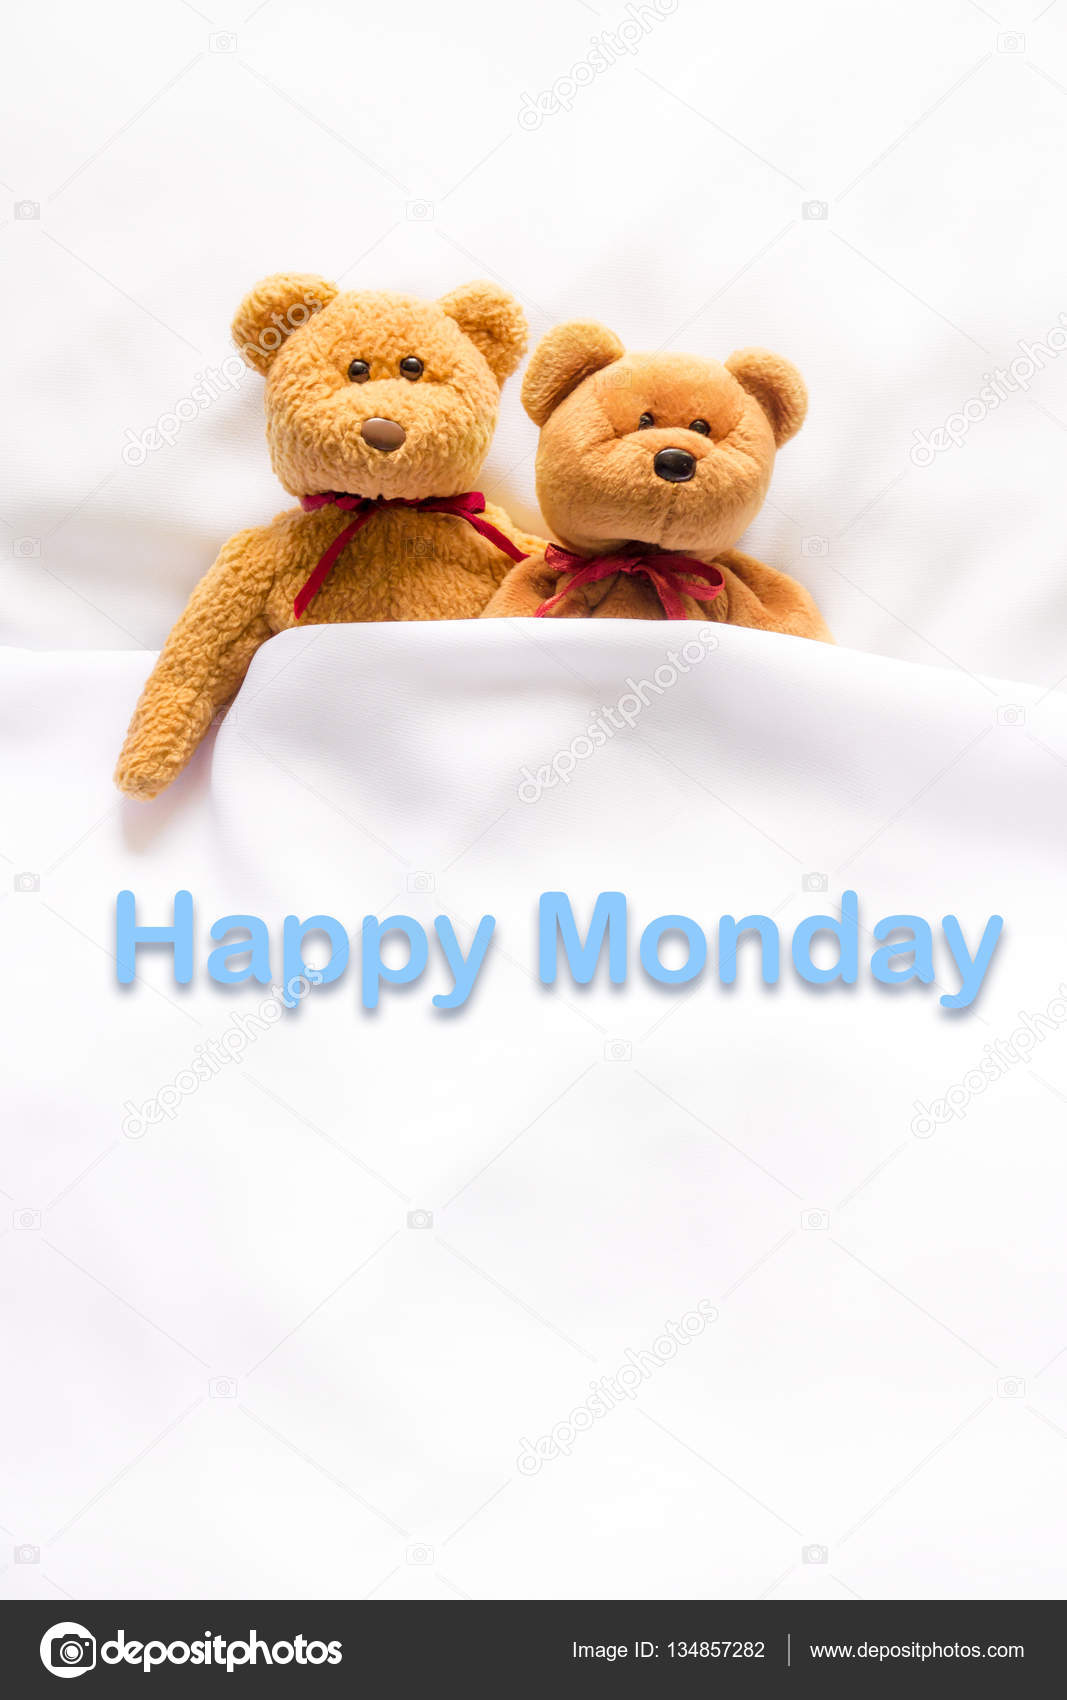 Teddy bear lying in the white bed with message happy monday teddy bear lying in the white bed with message happy monday meenstockphotogmail voltagebd Images